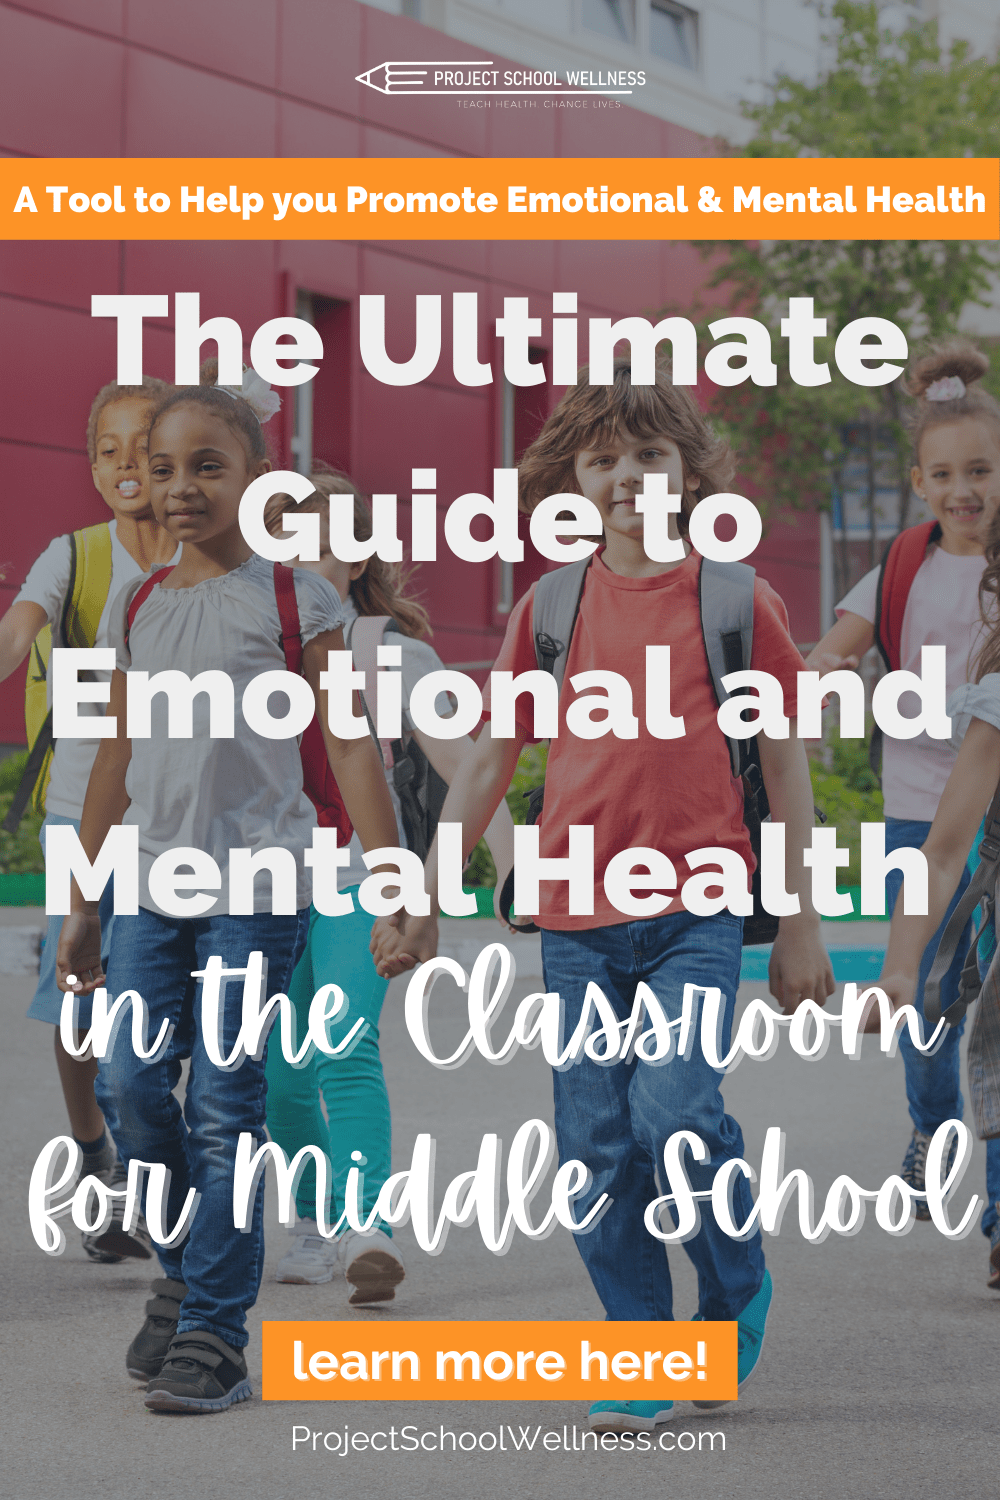 Your Guide to Emotional and Mental Health with free mental health lesson plans from Project School Wellness